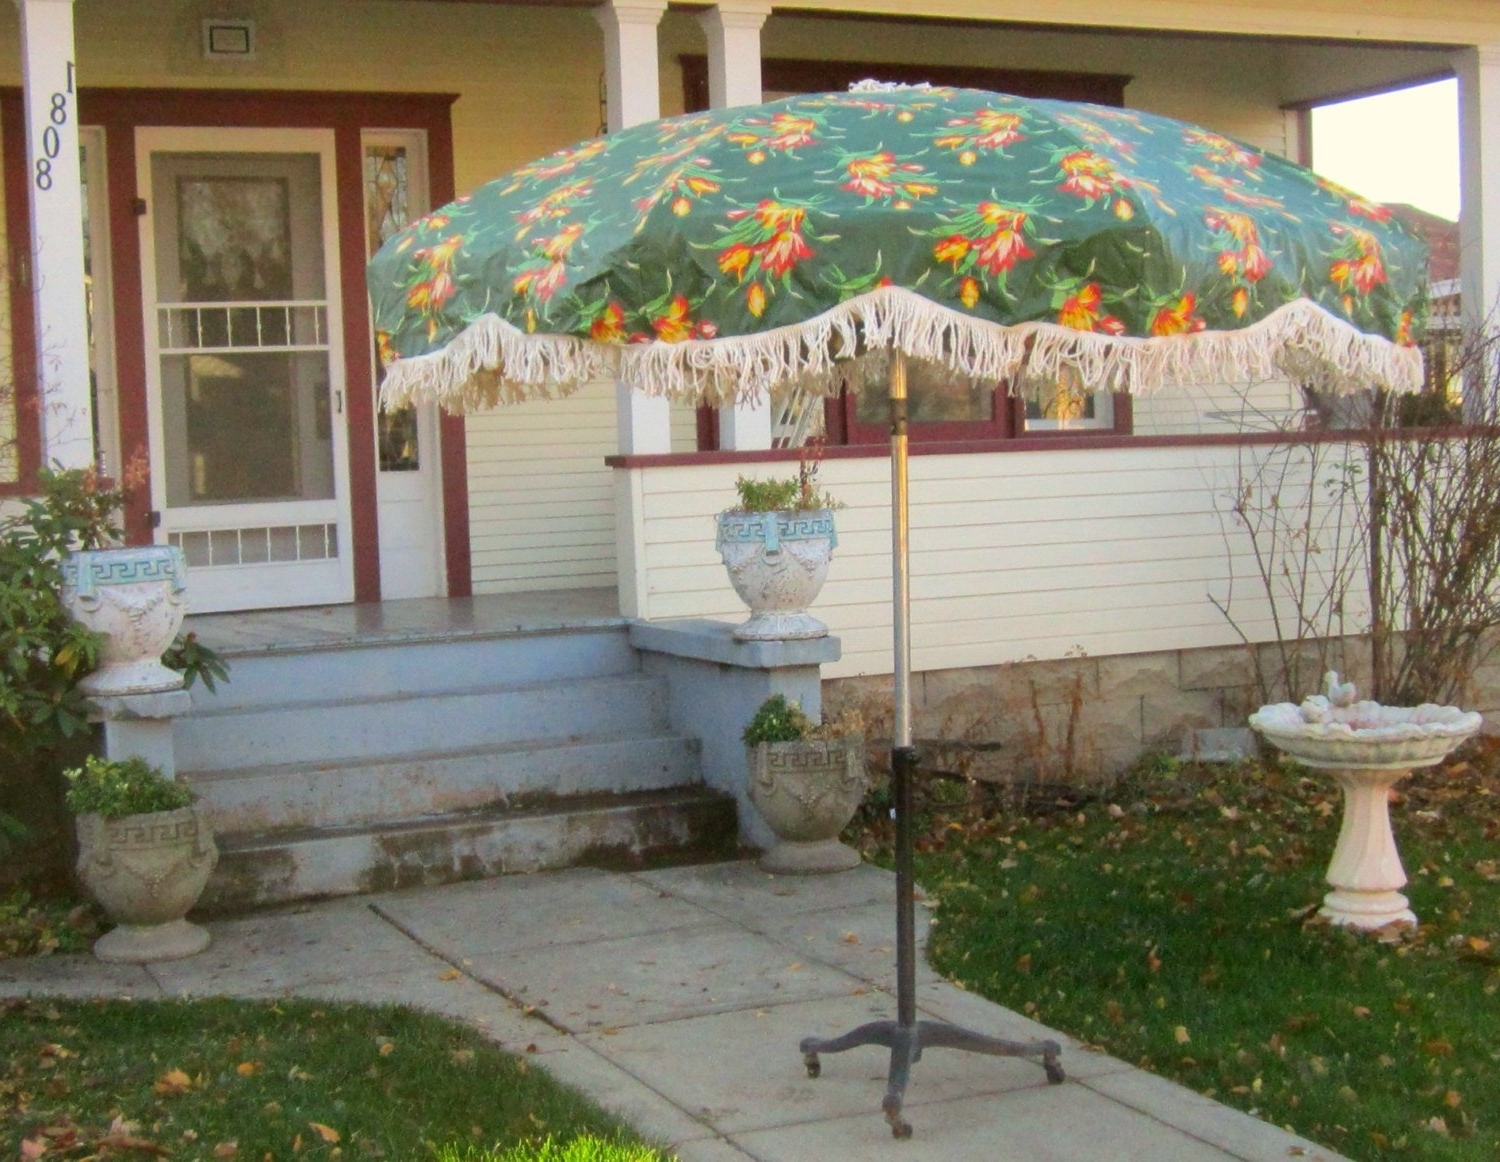 Well Known Vinyl Patio Umbrellas With Fringe With Regard To Vinyl Patio Umbrellas With Fringe (View 20 of 20)